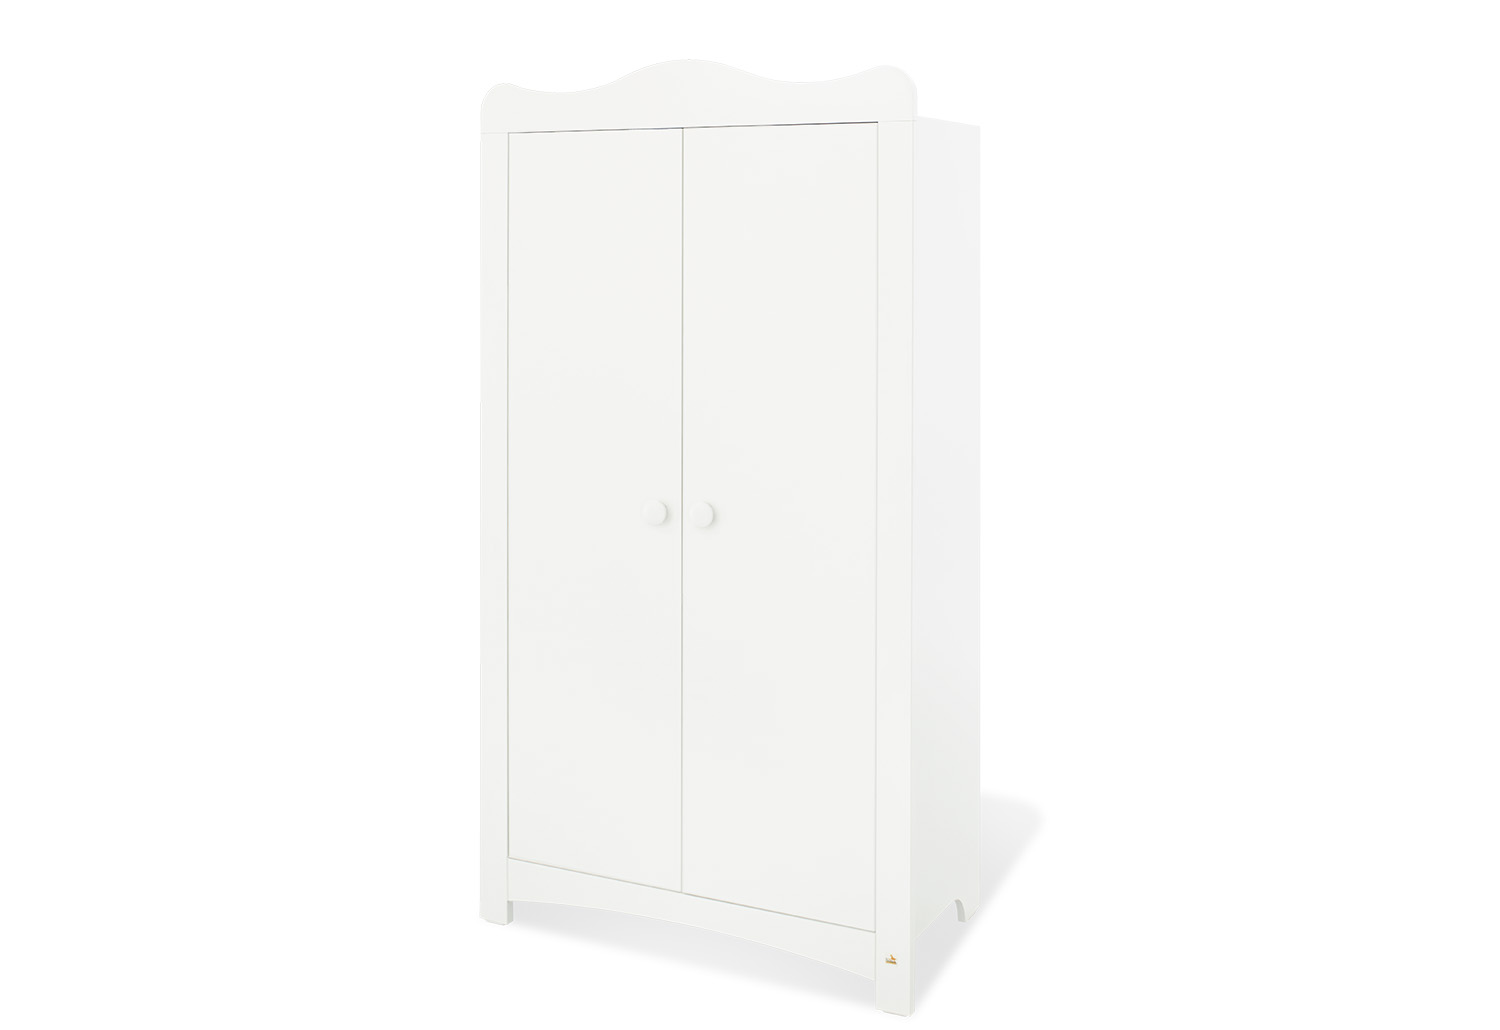 armoire enfant 2 portes blanche florentina pinolino p140023 e kid tout pour la chambre de b b. Black Bedroom Furniture Sets. Home Design Ideas